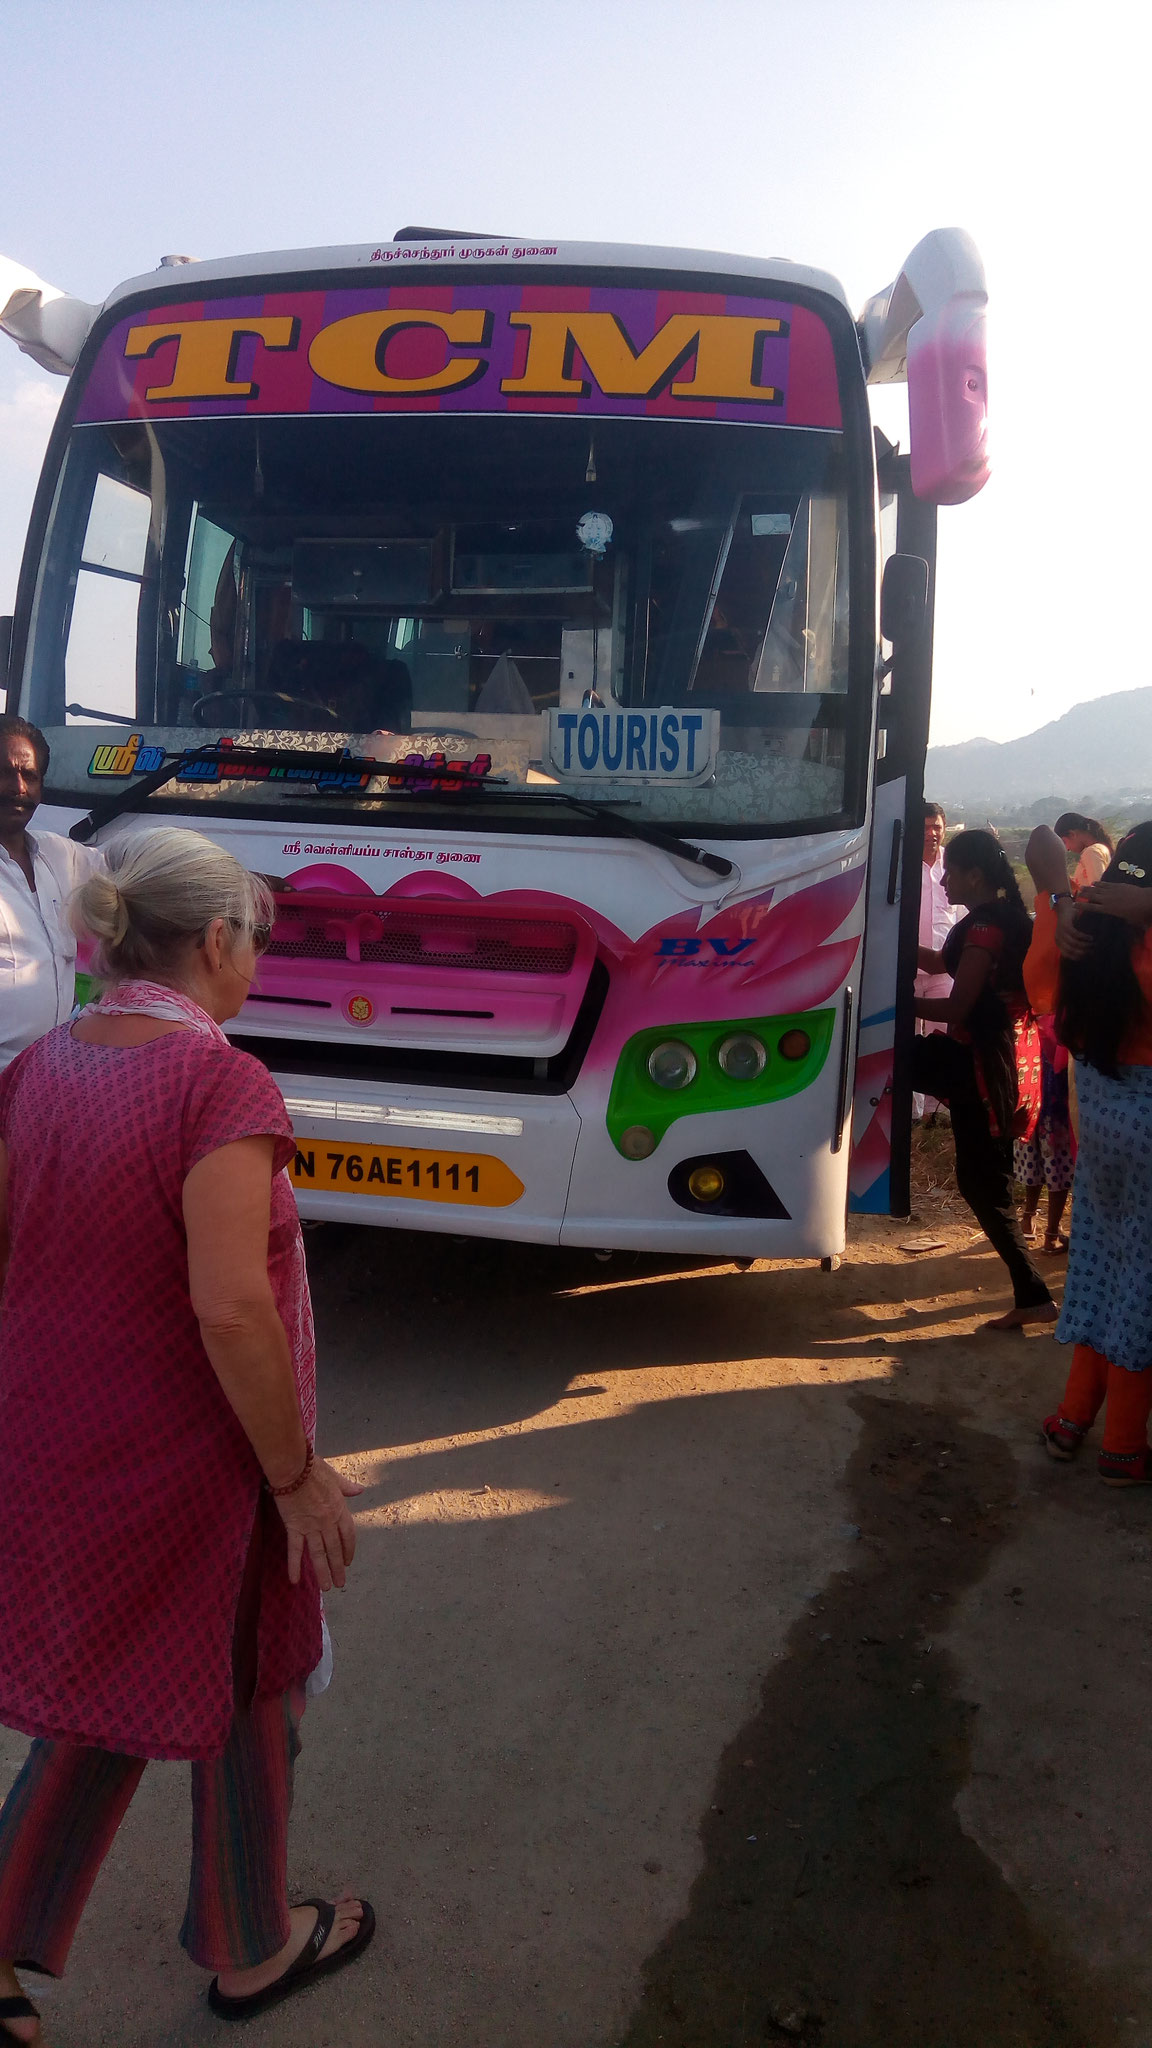 This is how we roll :) We booked a bus and drove from Tenkasi to Puttaparthi (24 hours).